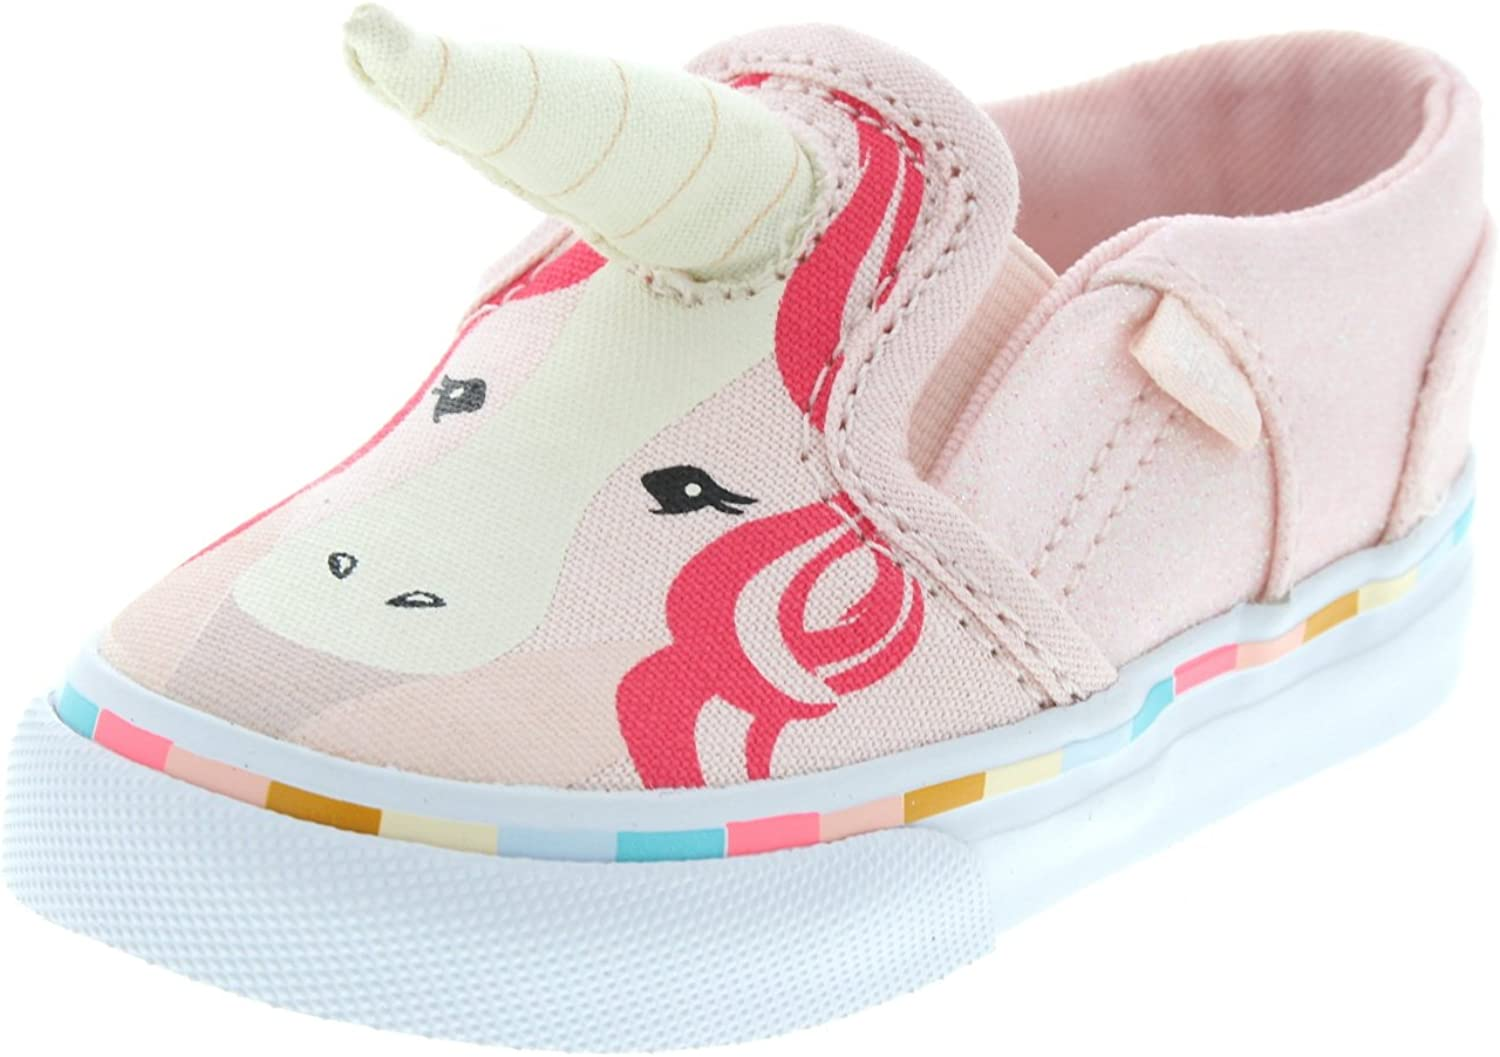 Vans Toddler Girls Asher V Pink Unicorn with Horn Sneakers ...